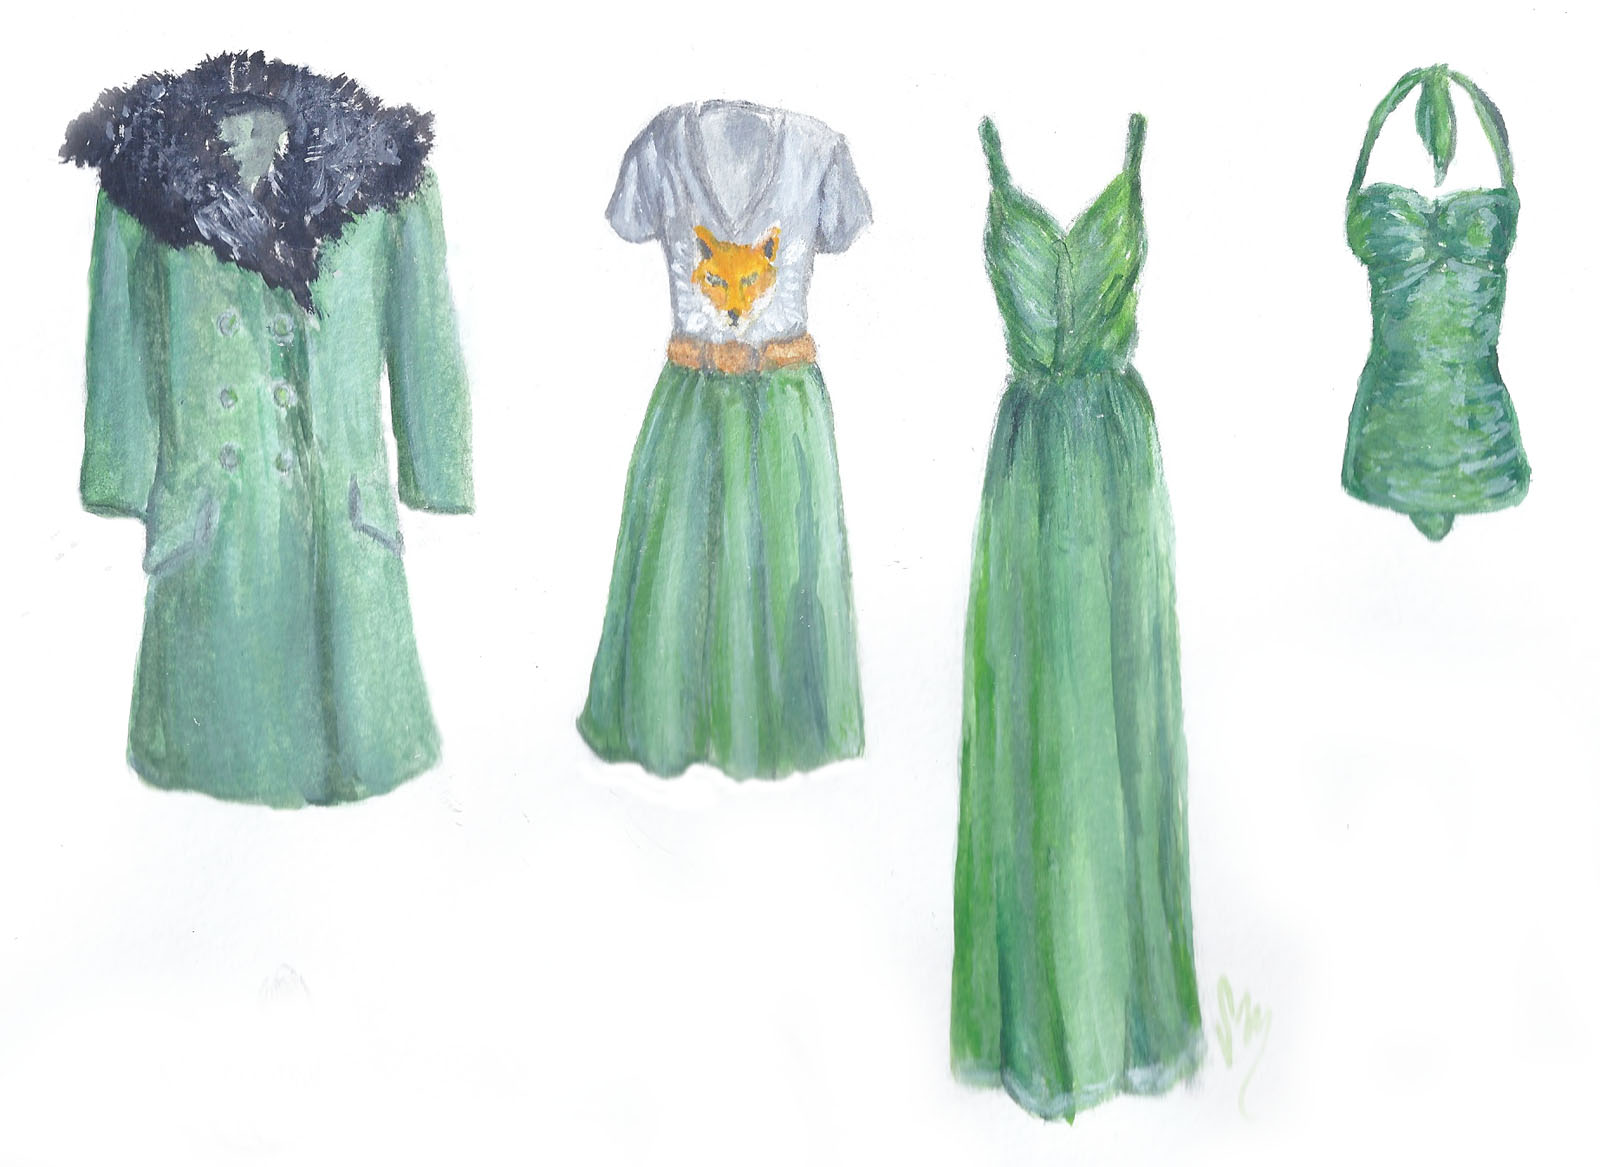 Emerald City: A Few Looks in Pantone's Color of the Year